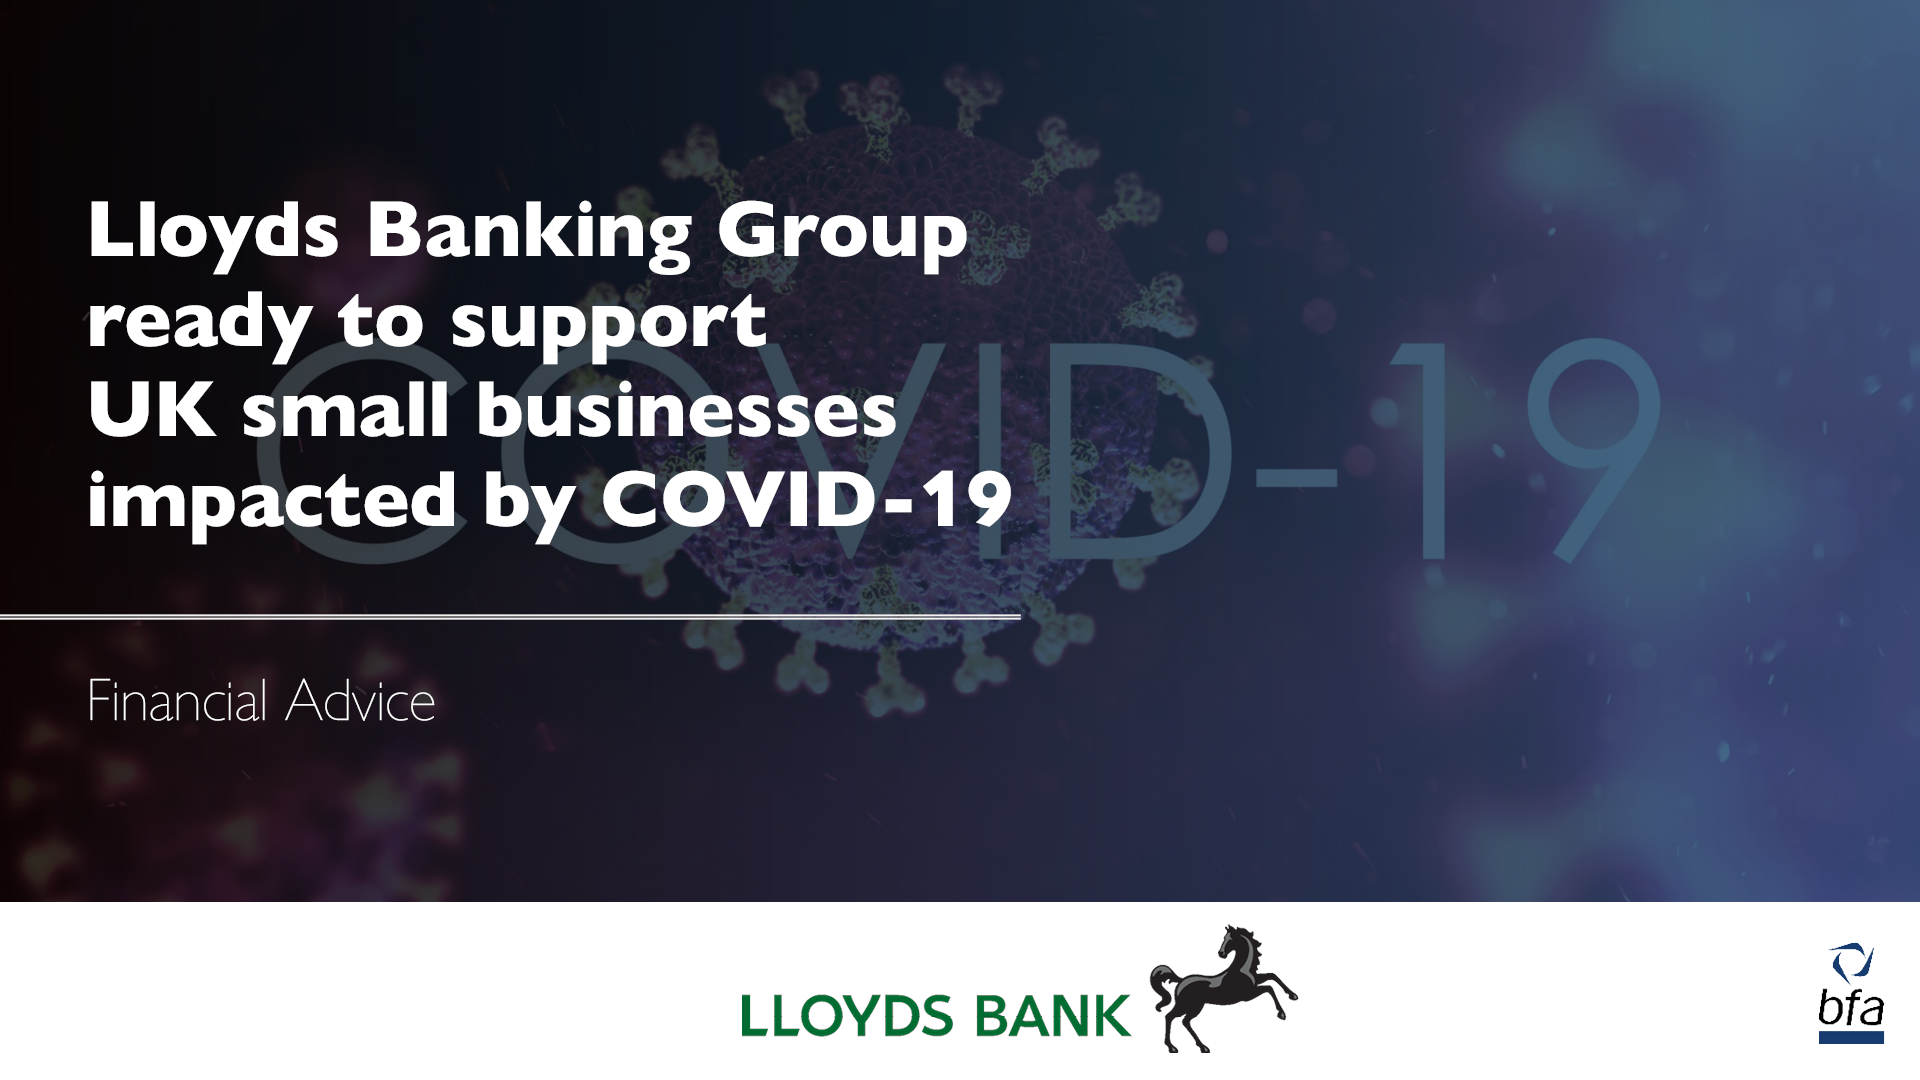 Lloyds Banking Group ready to support UK small Businesses impacted by COVID-19